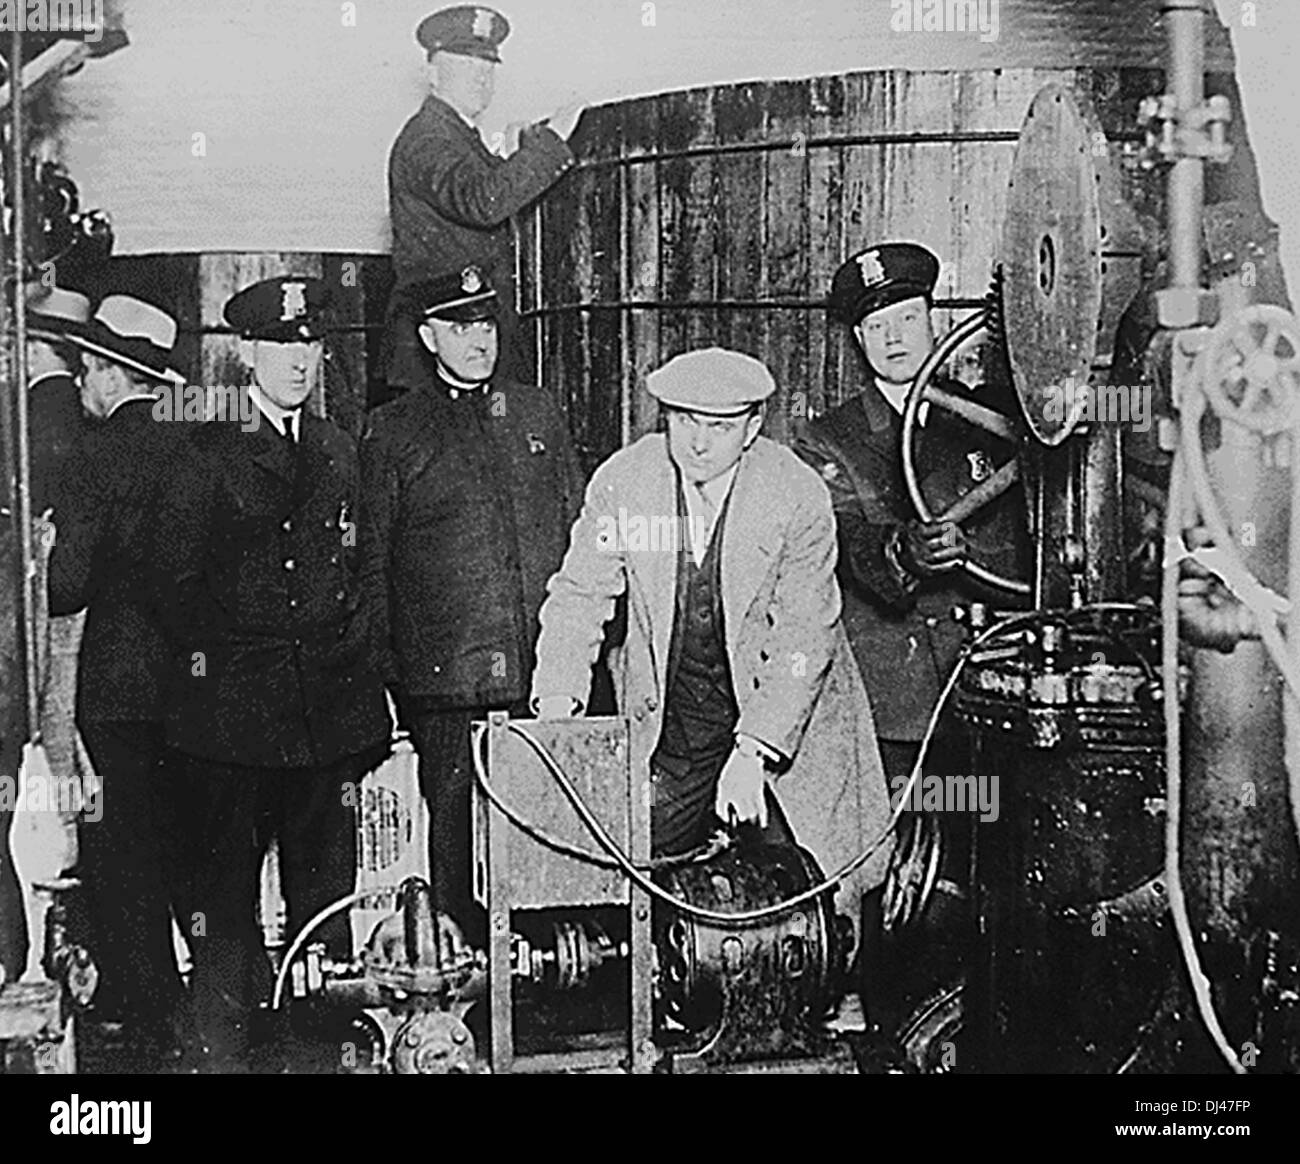 Detroit police inspecting equipment found in a clandestine brewery during the Prohibition era - Stock Image